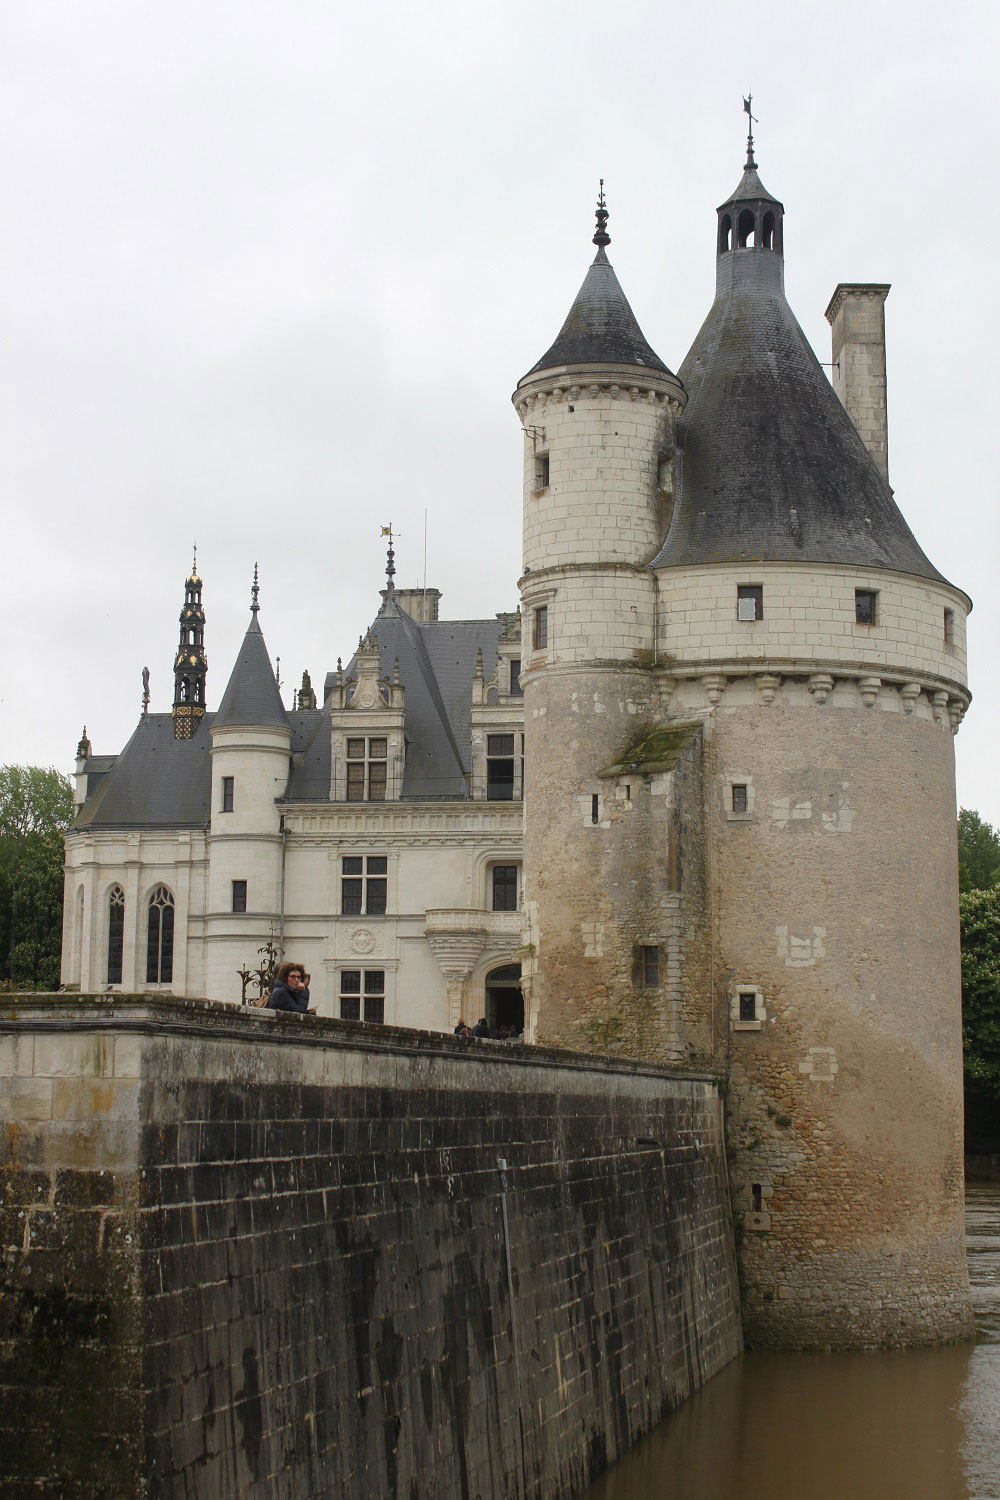 Day Trip to the Châteaux of the Loire Valley